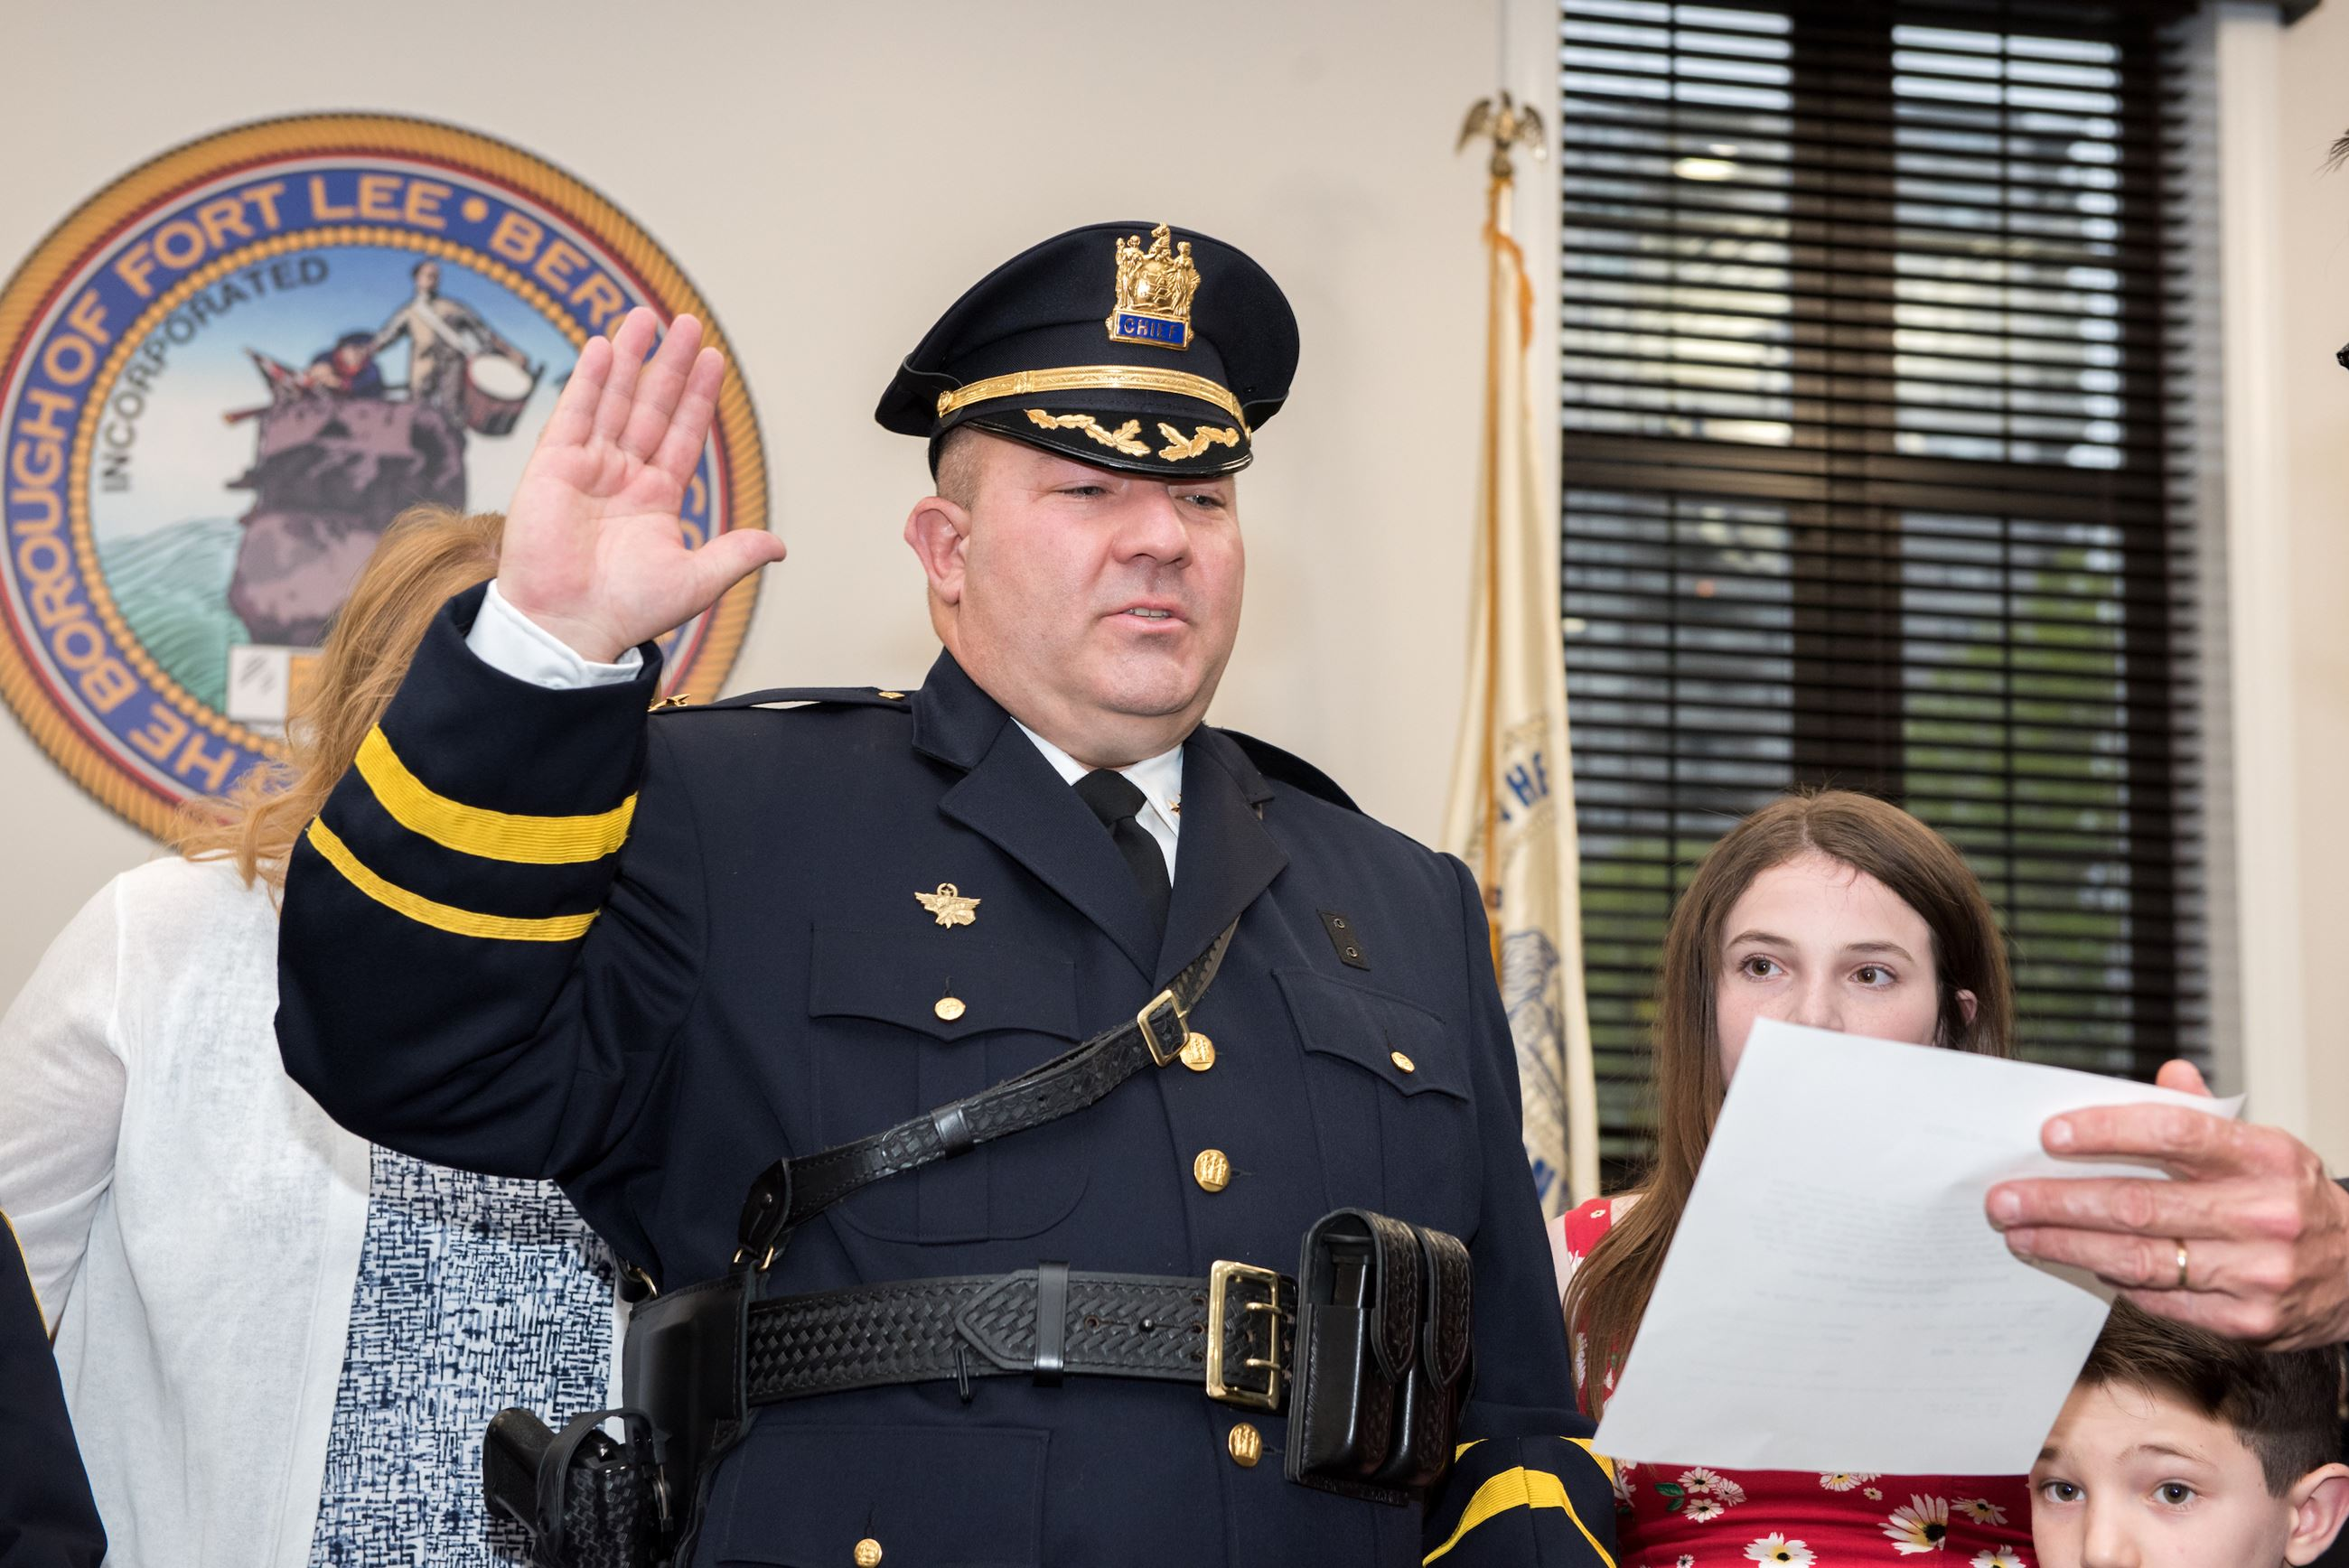 Chiefs Swearing In 5/9/19 -  Chief Hintze